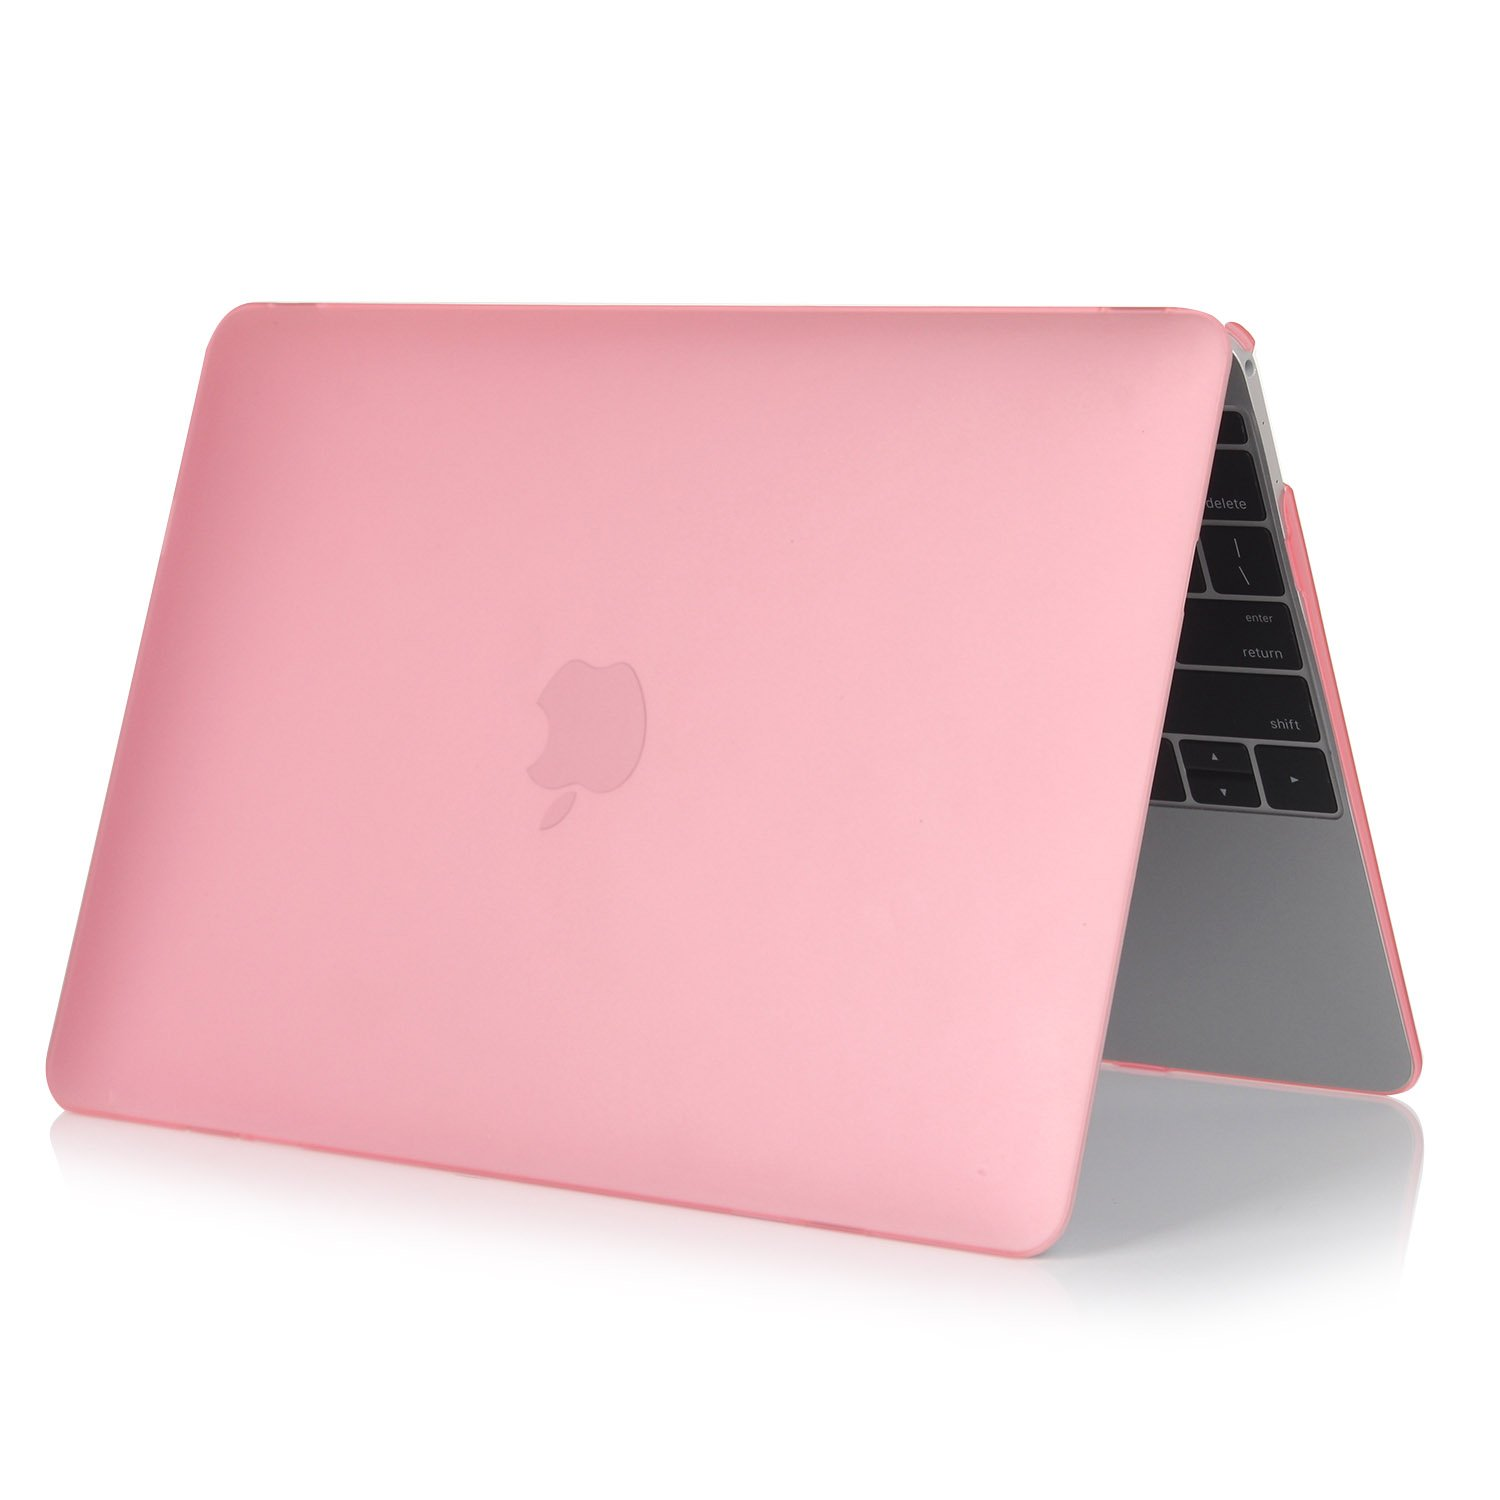 """13.3"""" MOSISO PINK Matte Case for MacBook Air Laptop 9 COLORS FAST FREE SHIPPING USA"""